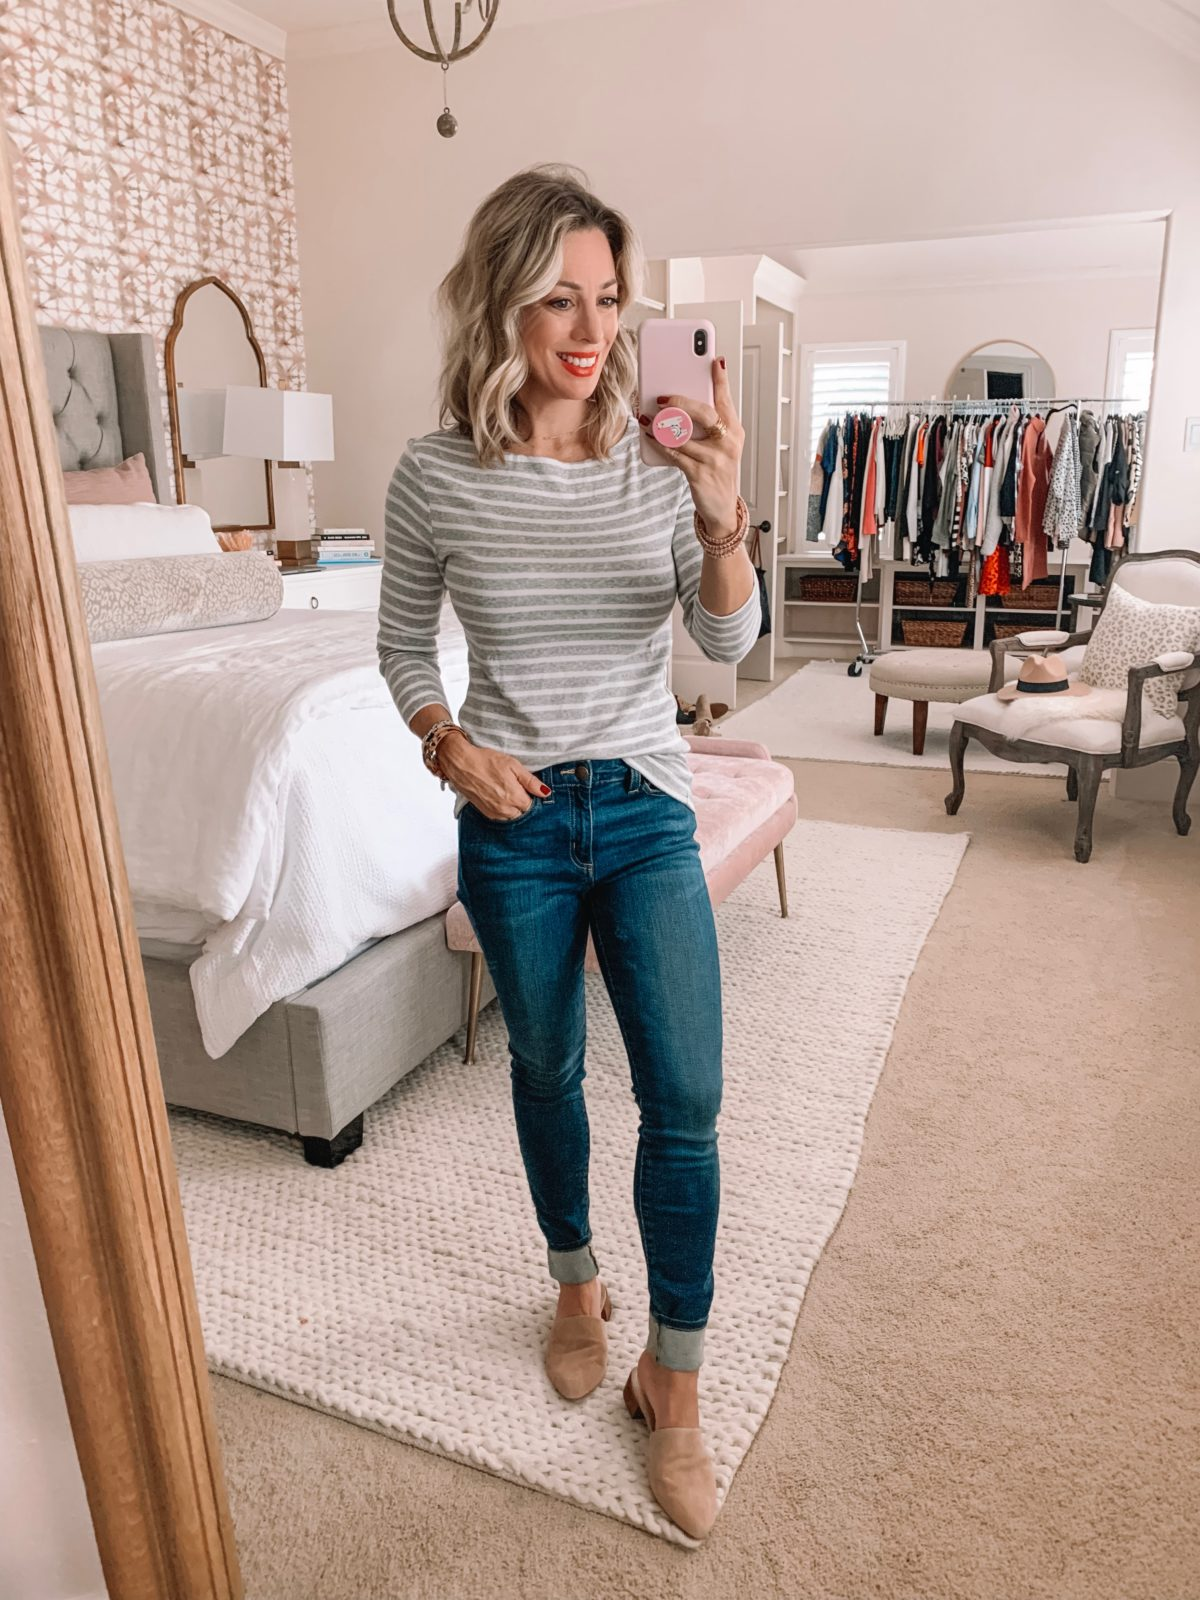 Amazon Prime Fashion- Striped Top and Jeans